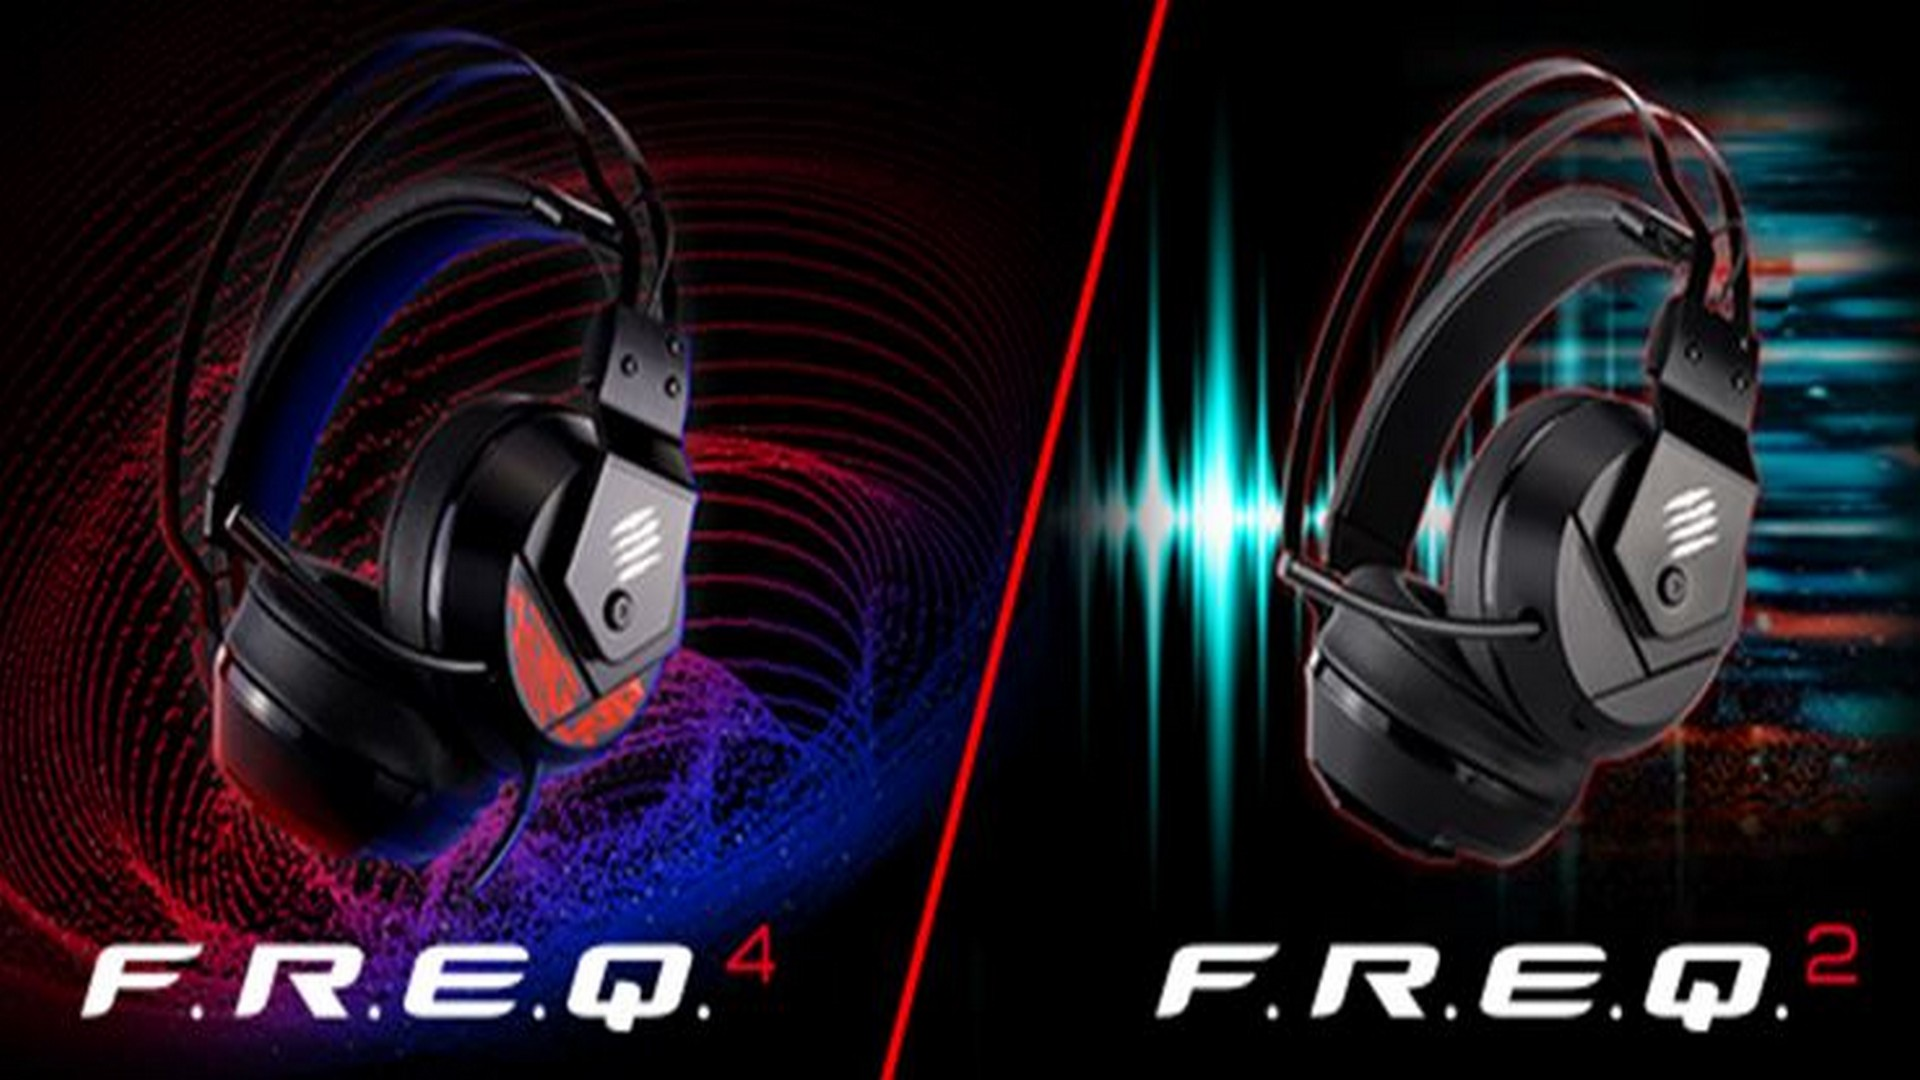 Mad Catz Ship New Range of F.R.E.Q. Gaming Headsets Delivering Professional Grade Gaming Audio